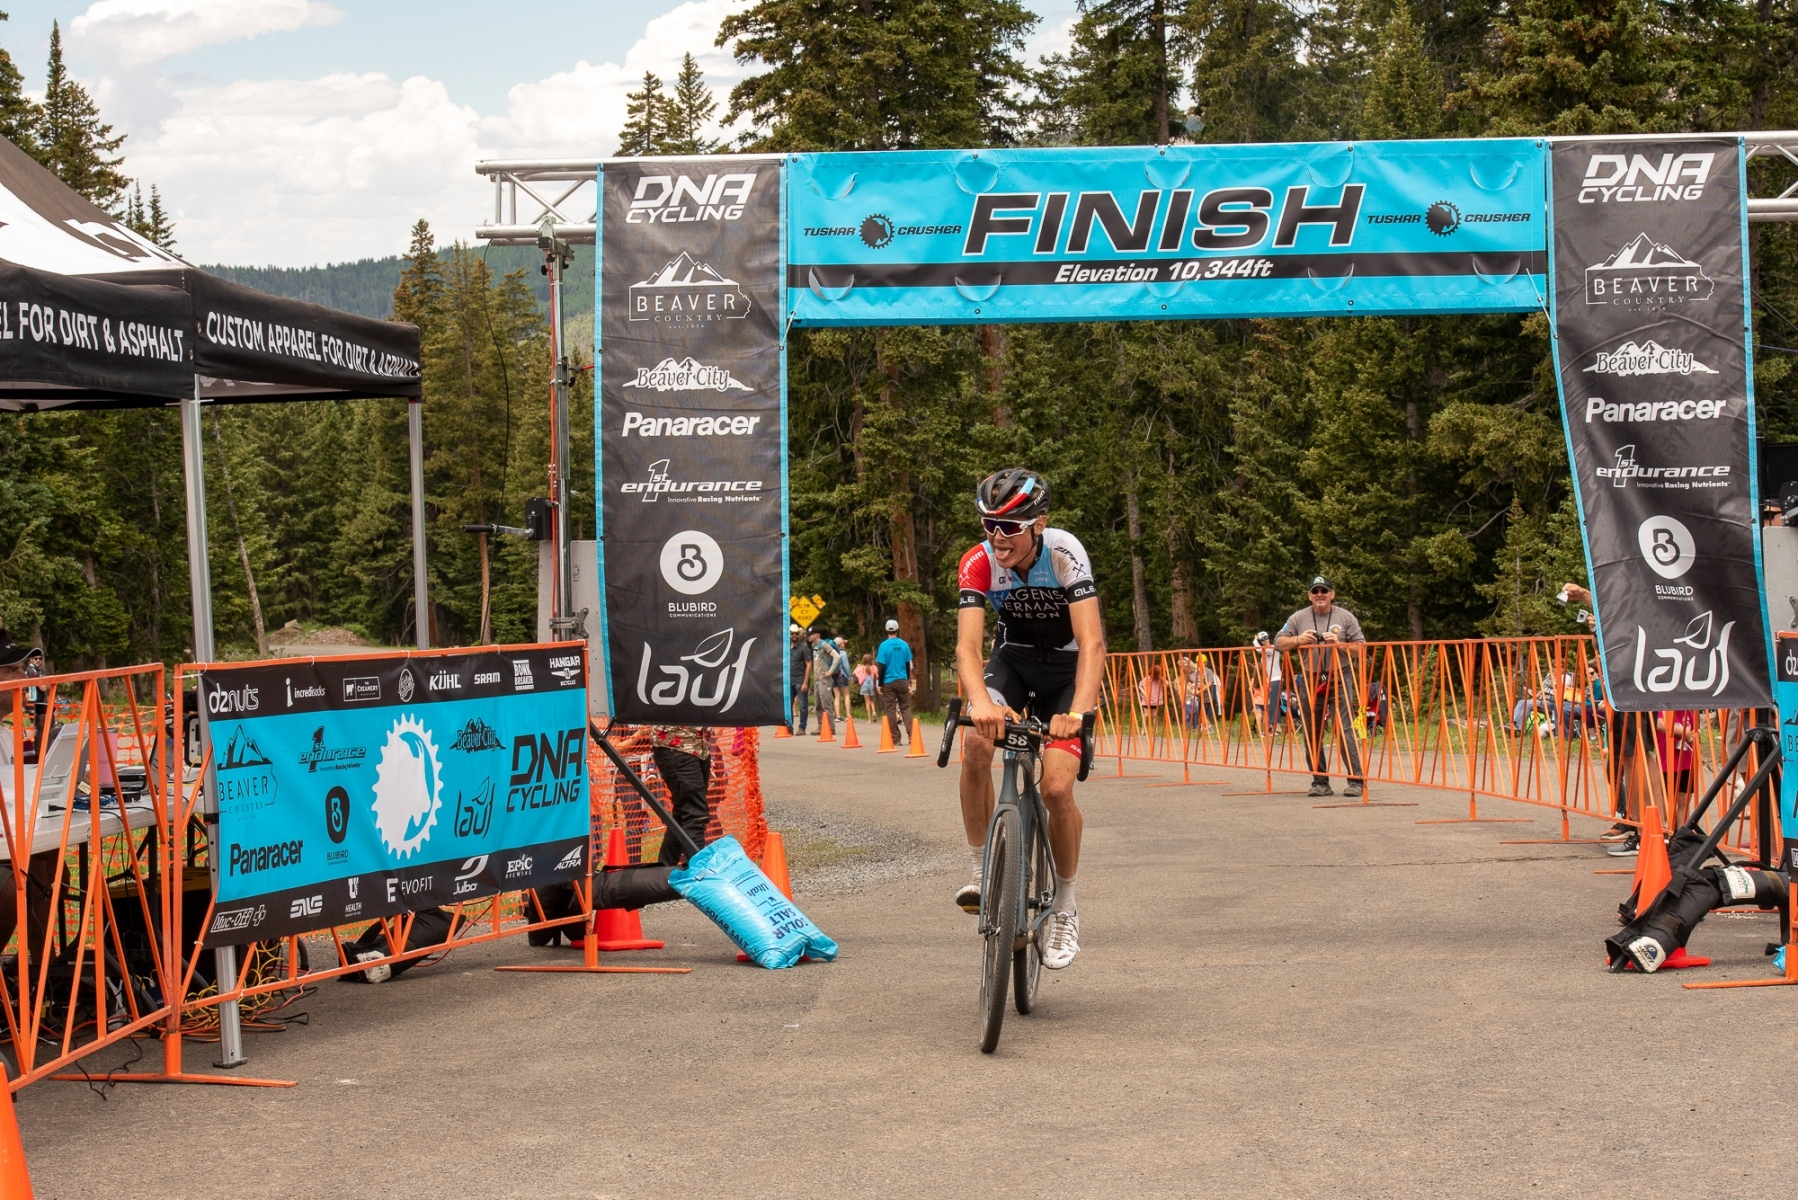 Something about the Crusher causes people's tongues to hang out. Eddie Anderson (Axeon-Hagens Berman) crosses the line in second place. Photo: Steven L. Sheffield.